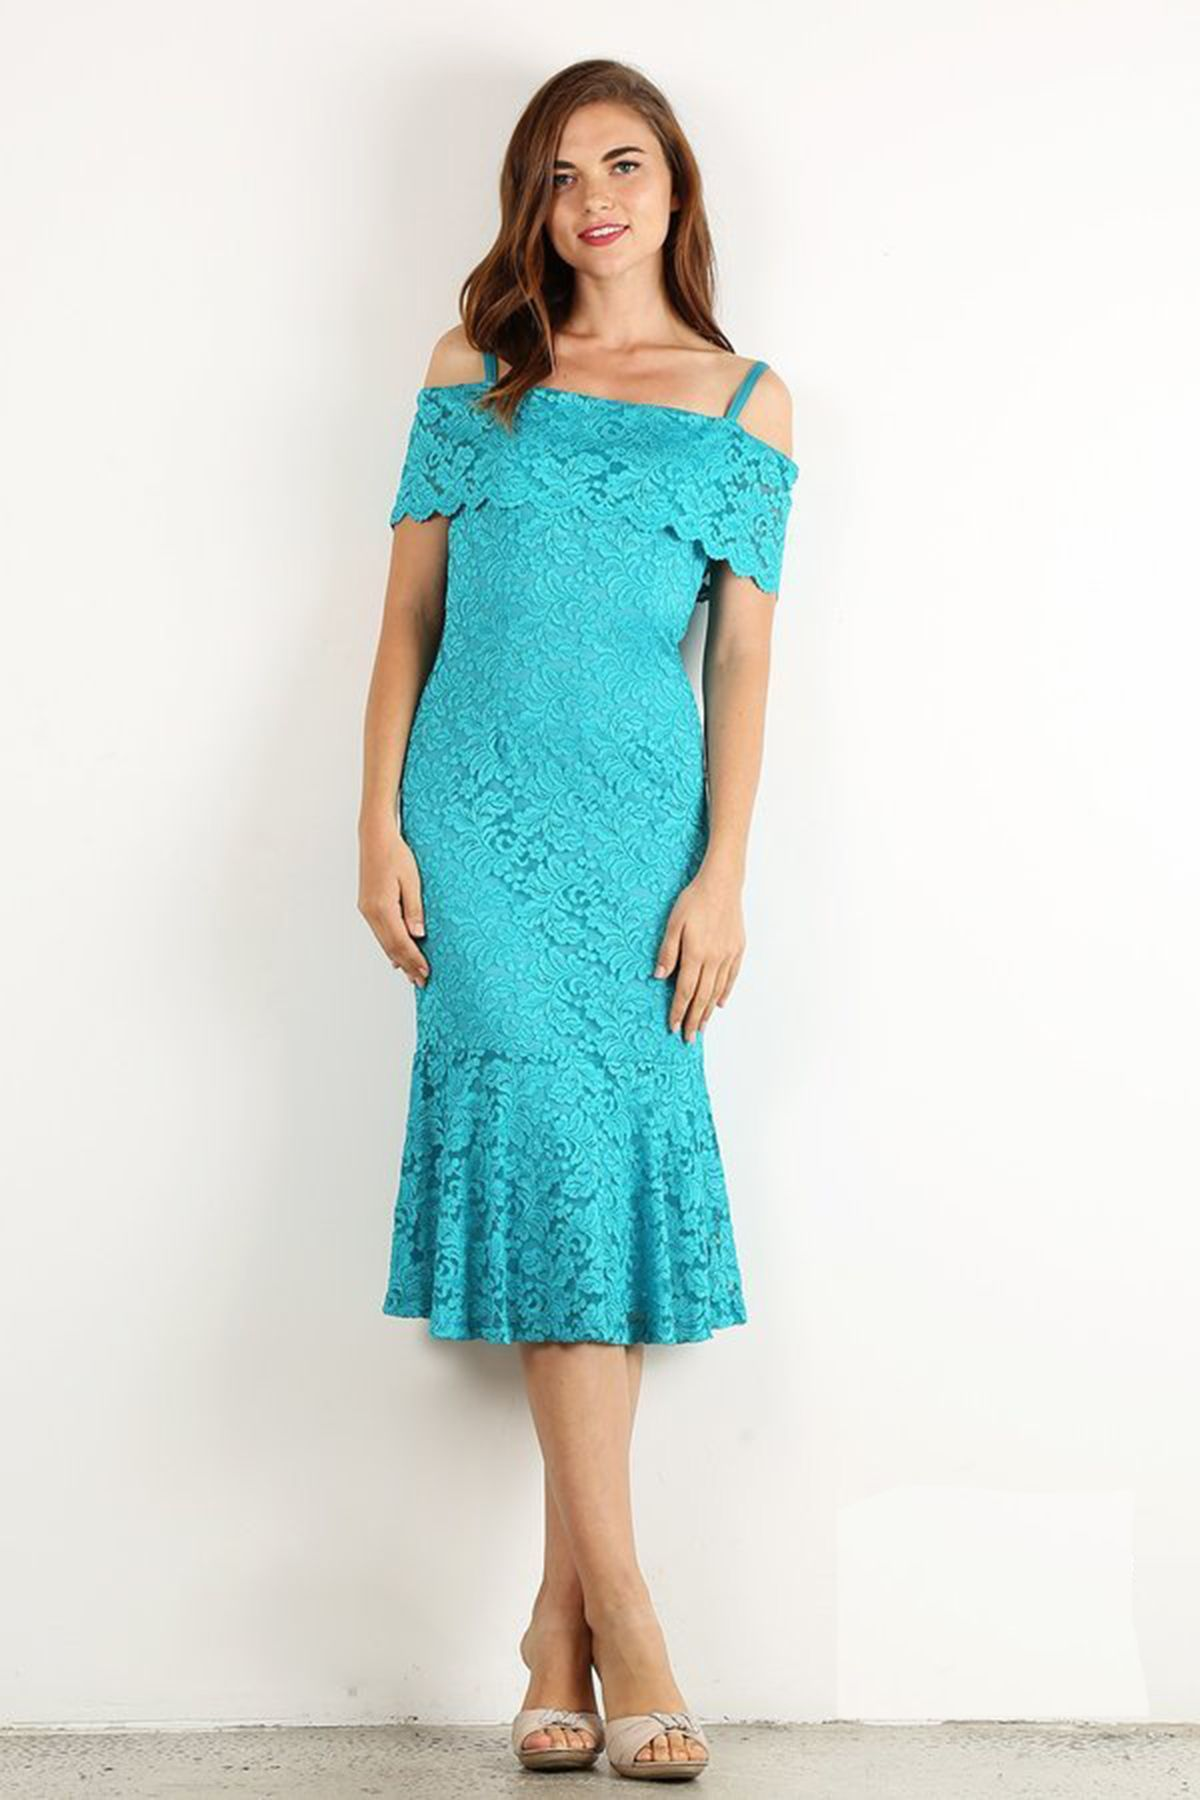 Teal Blue Sexy Short Cocktail Dress Solid color, short lace cocktail ...